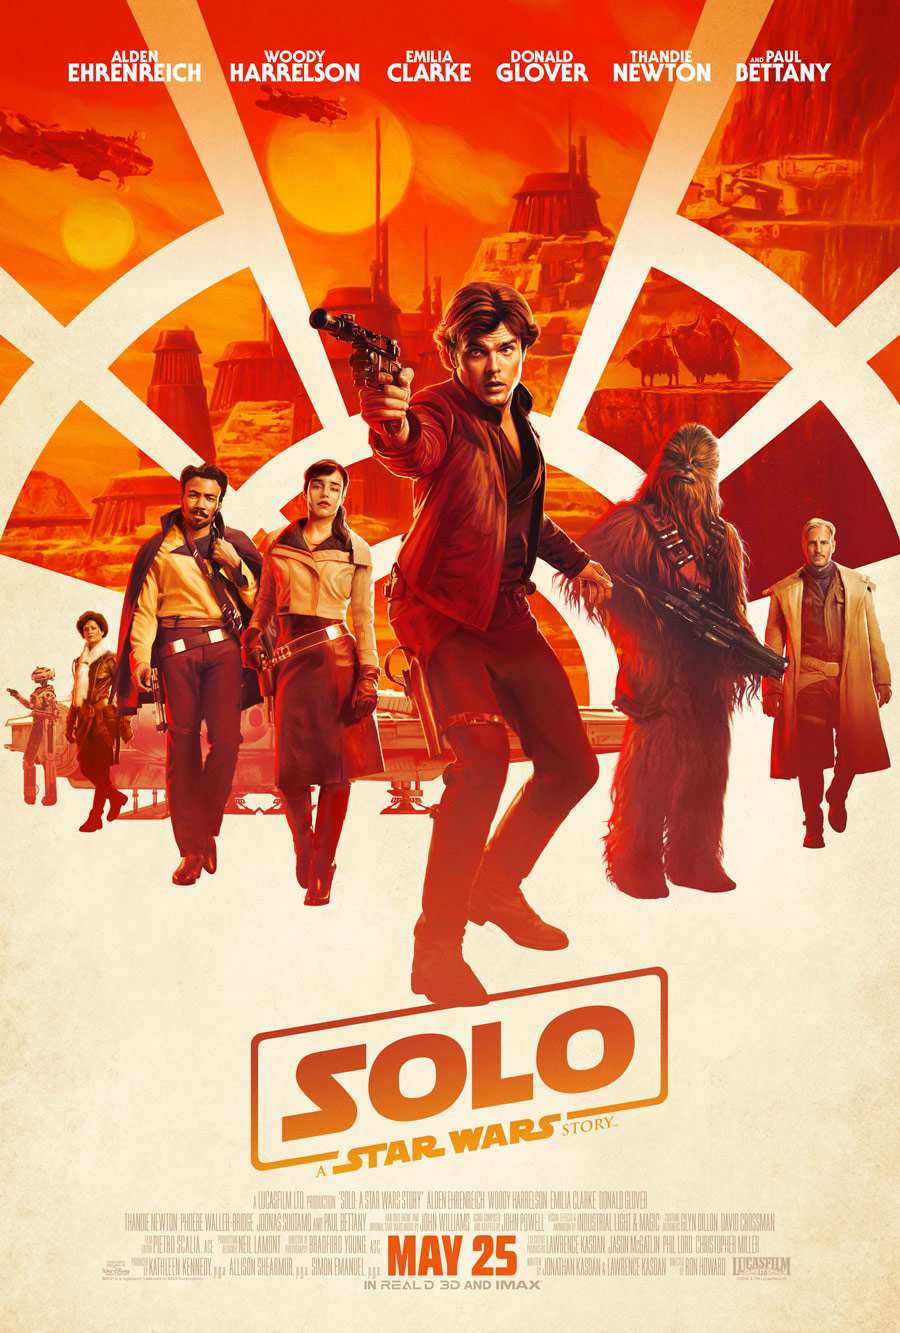 Solo: an awful Star Wars movie, but a great movie movie.